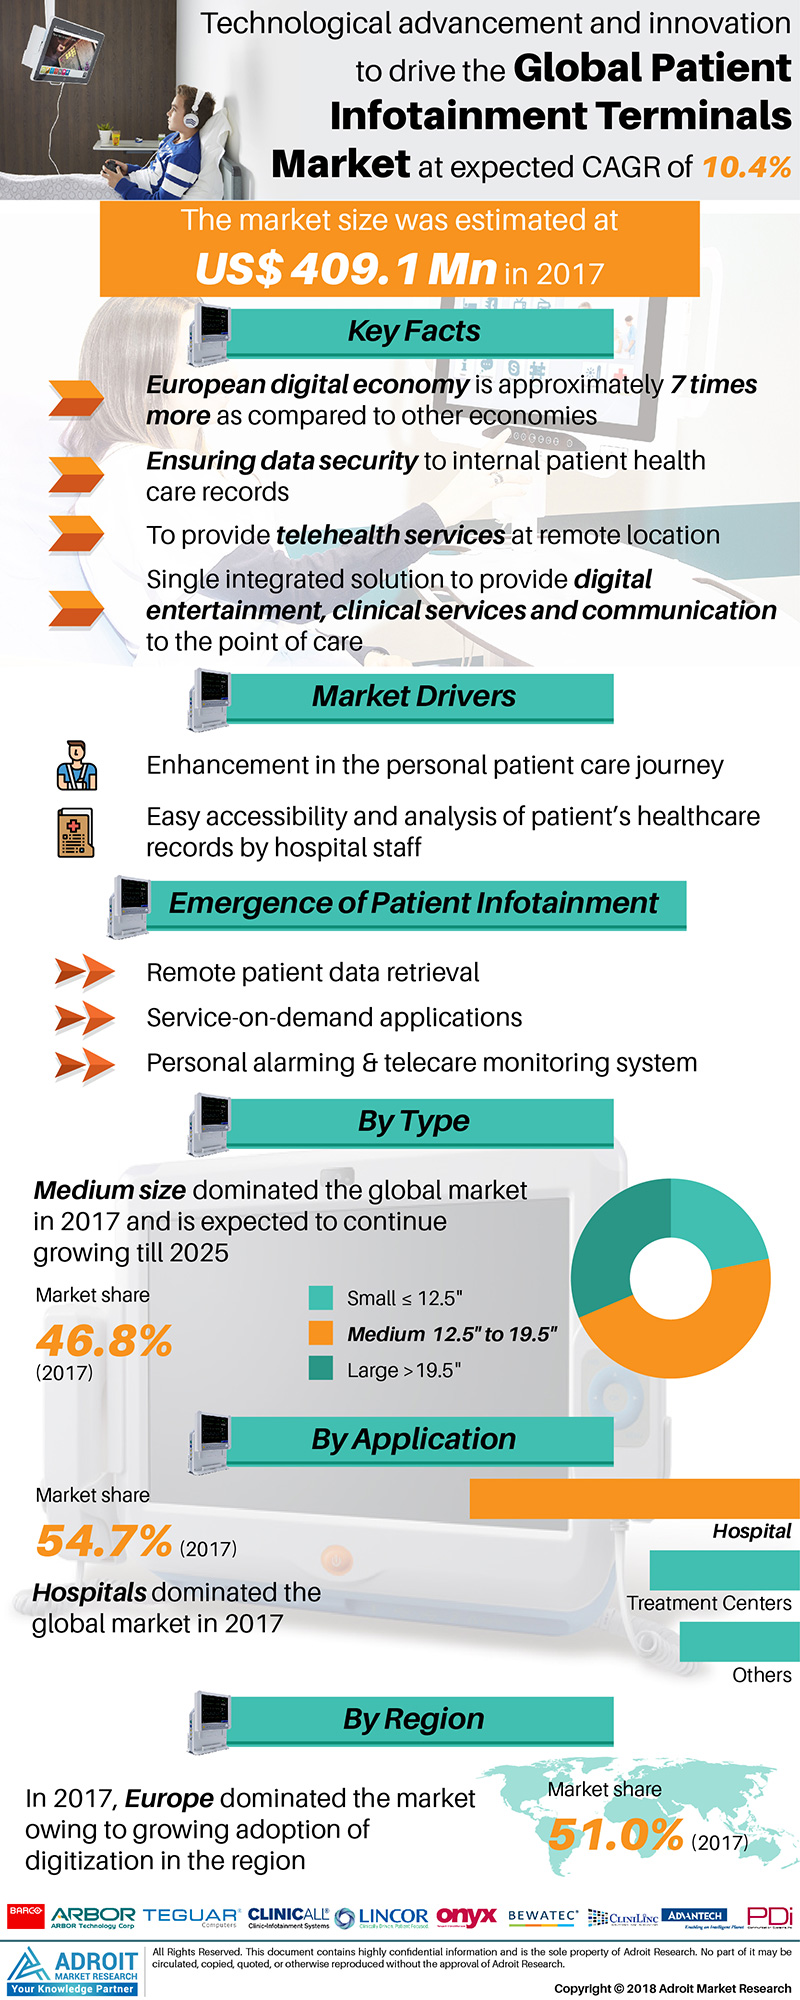 Global Patient Infotainment Terminals Market Size 2017 By Type, End-user, Region and Forecast 2018 to 2025